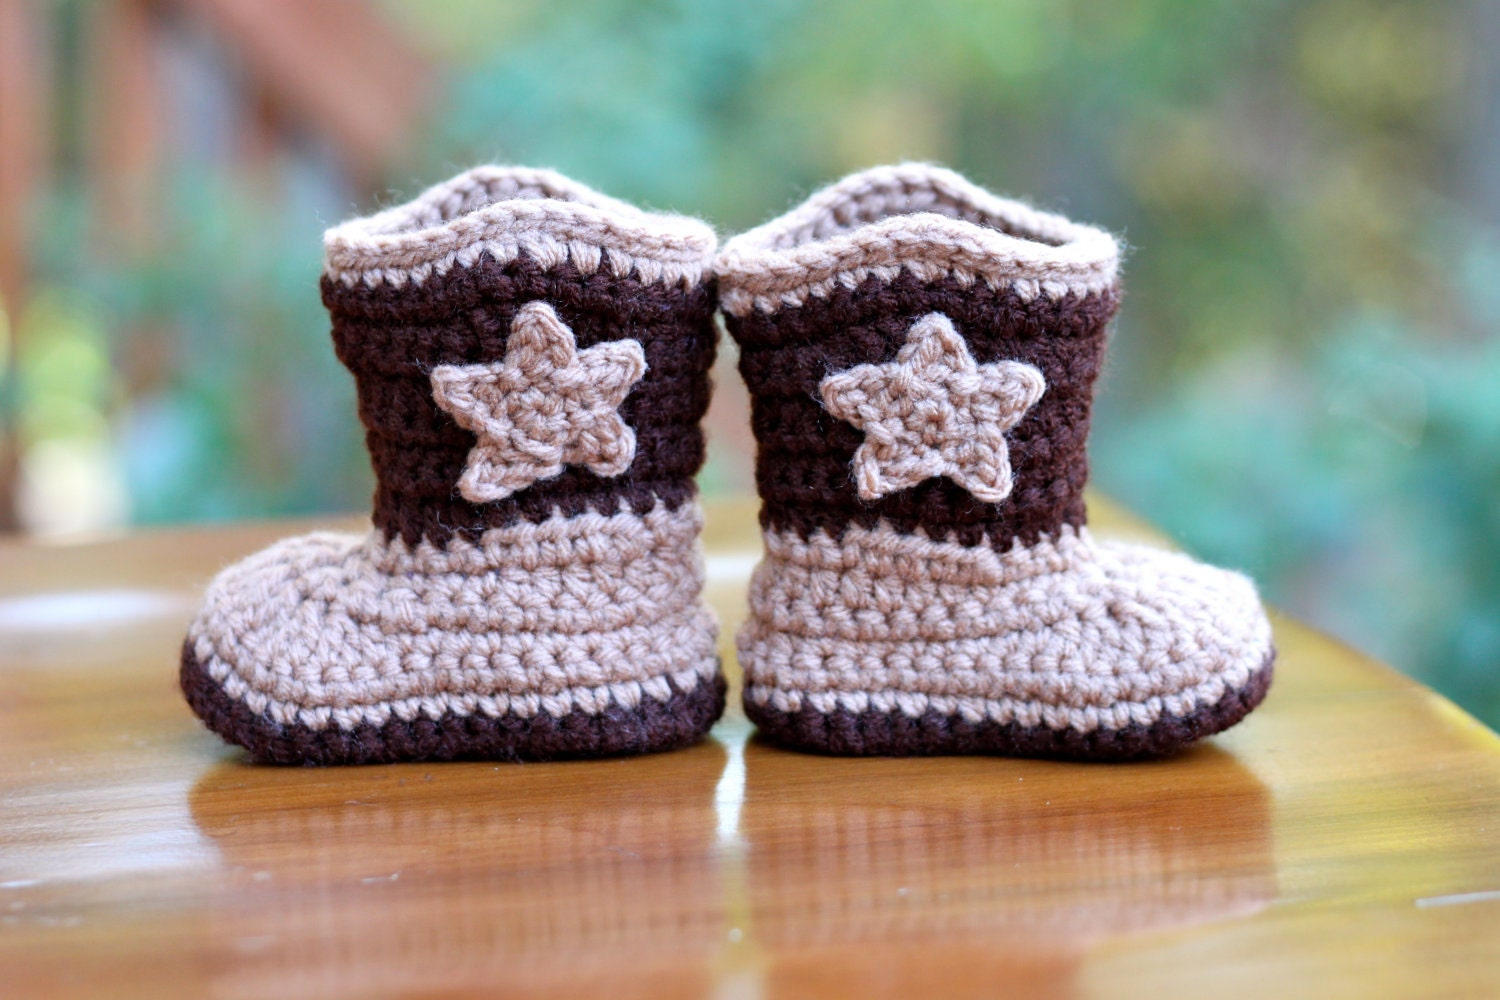 Baby cowboy boots - deals on 1001 Blocks